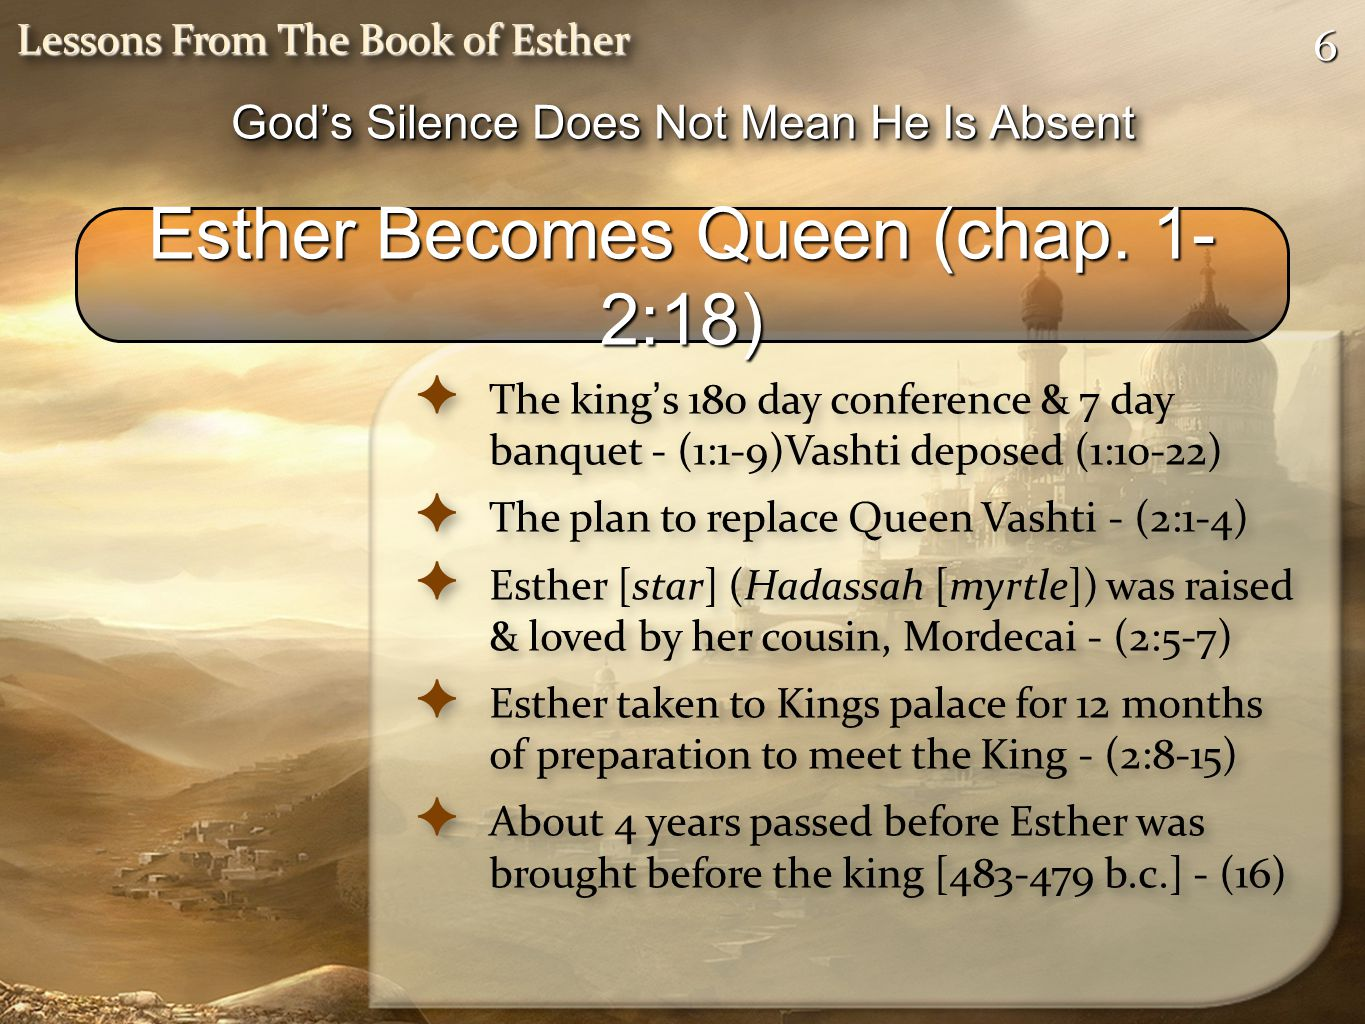 Esther Becomes Queen (chap. 1-2:18)